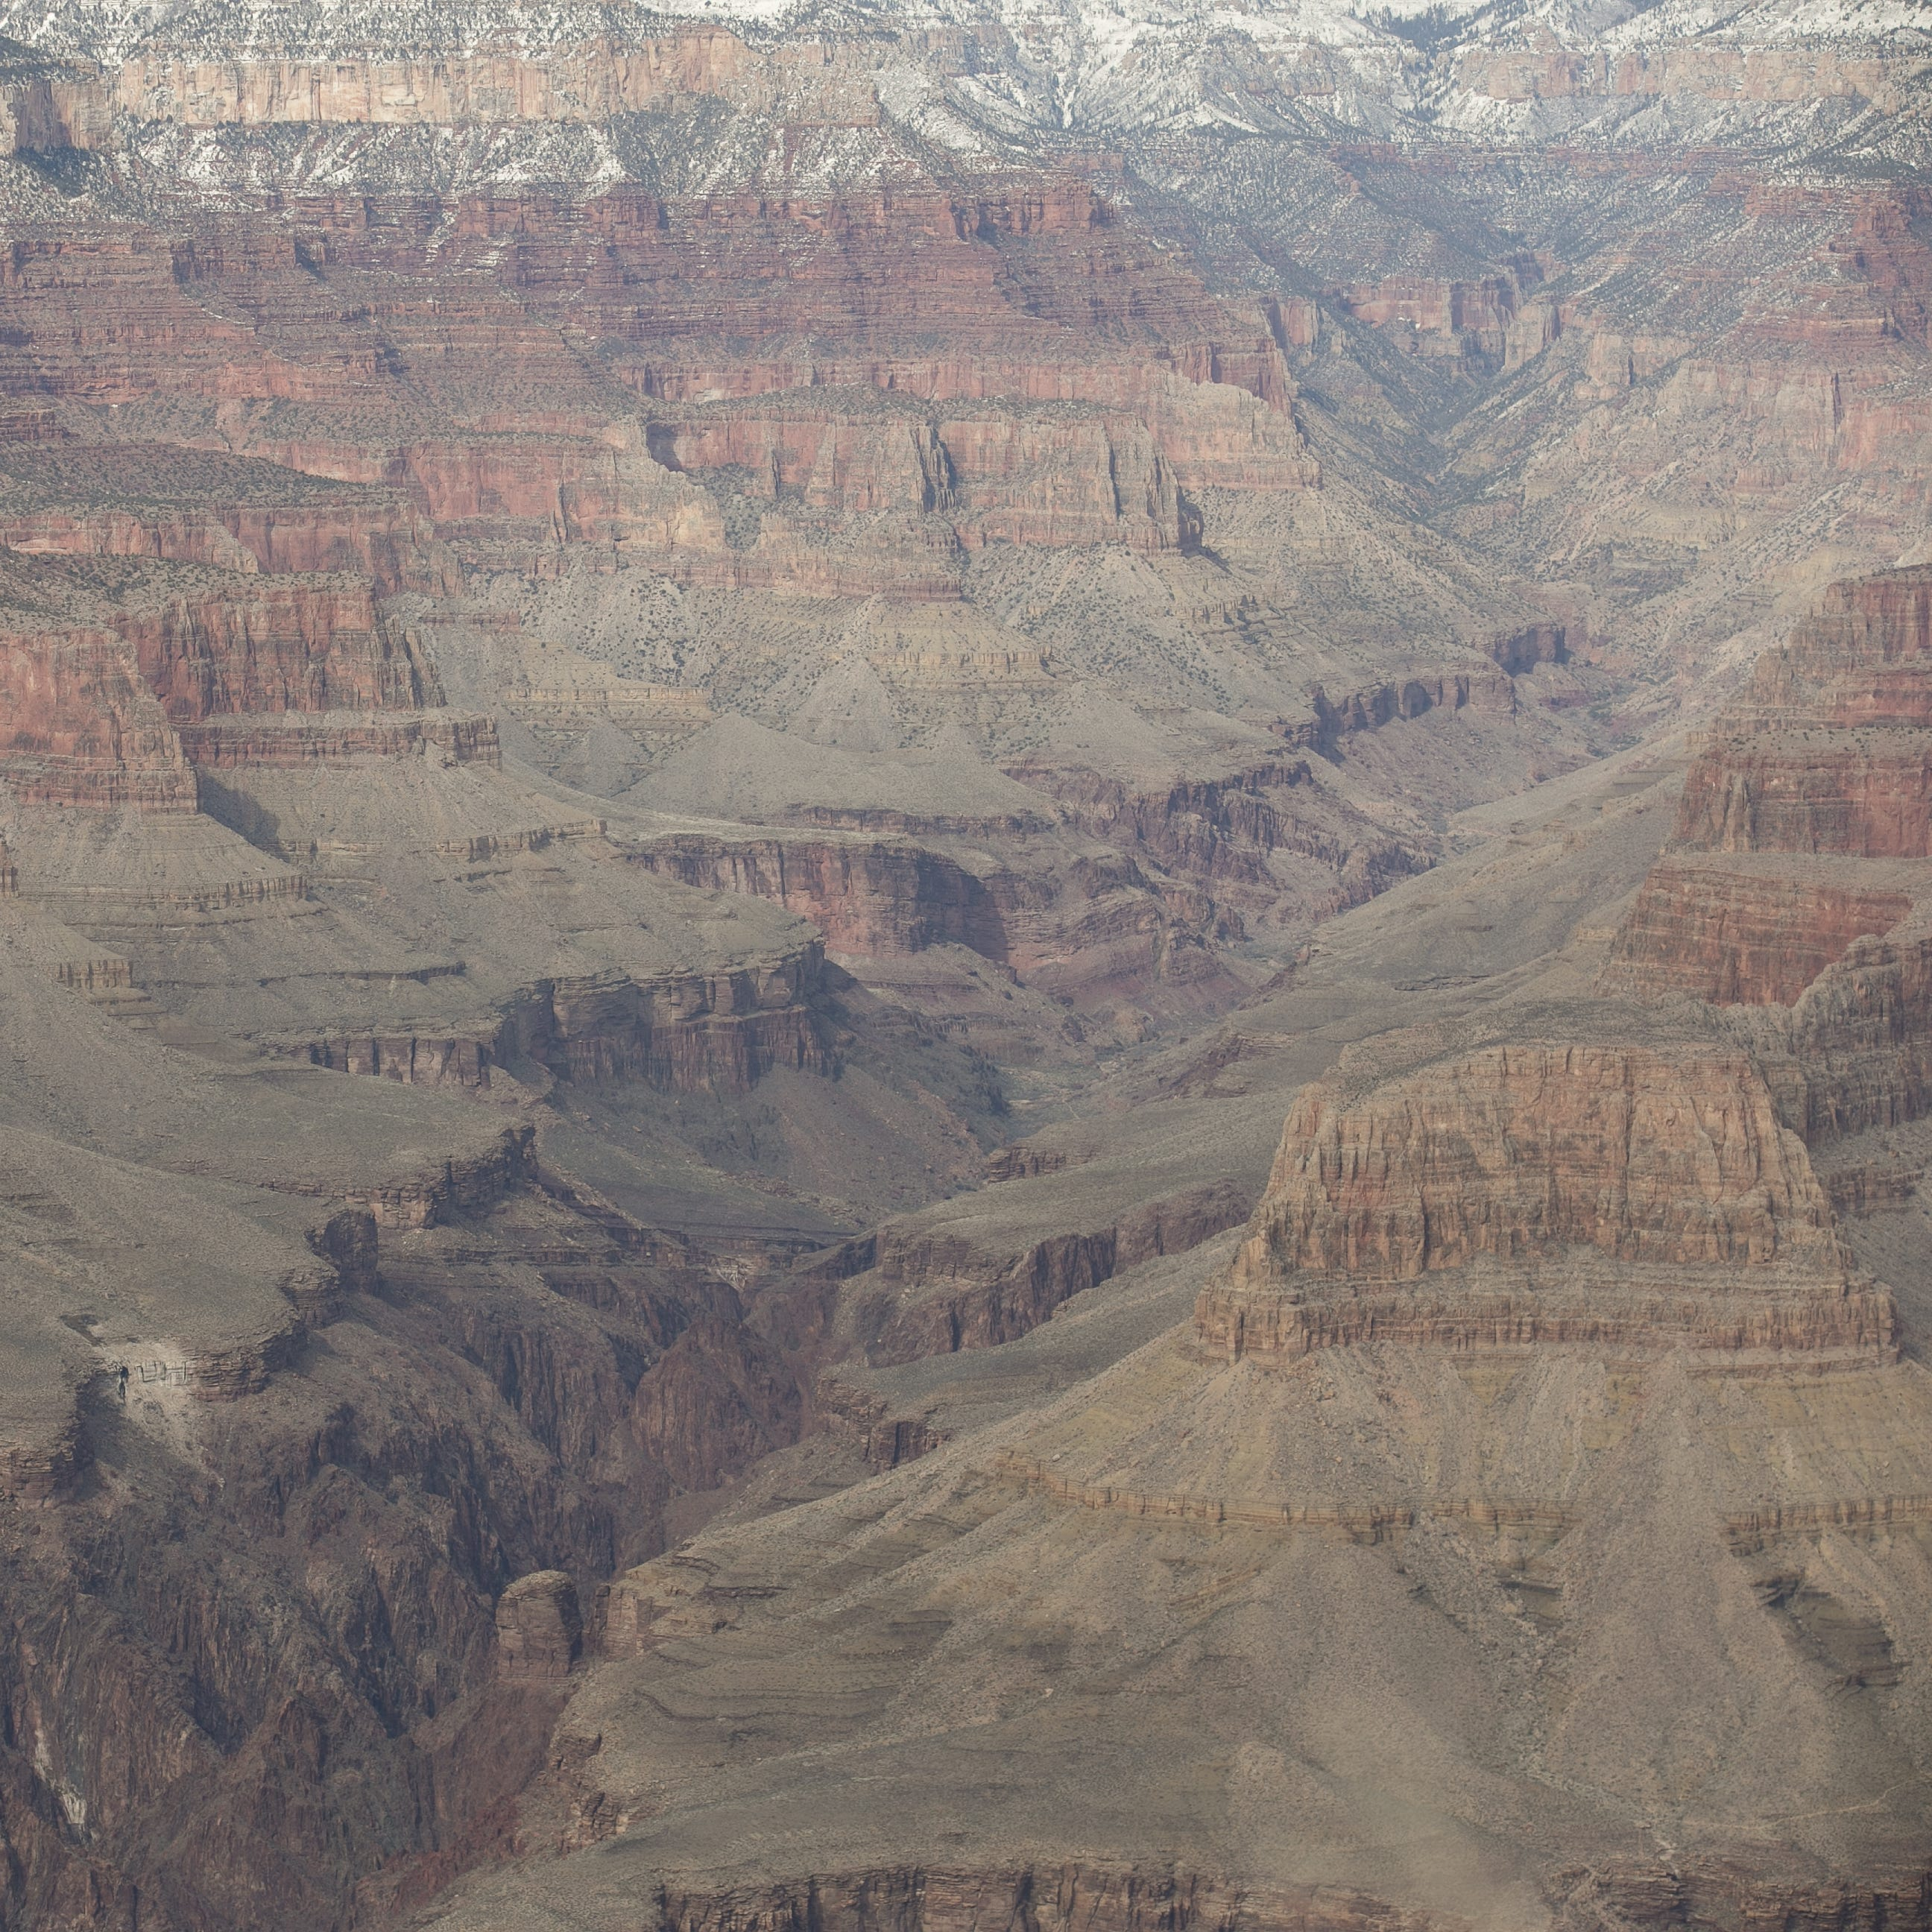 Peoria woman identified as visitor killed after falling 200 feet at Grand Canyon's South Rim